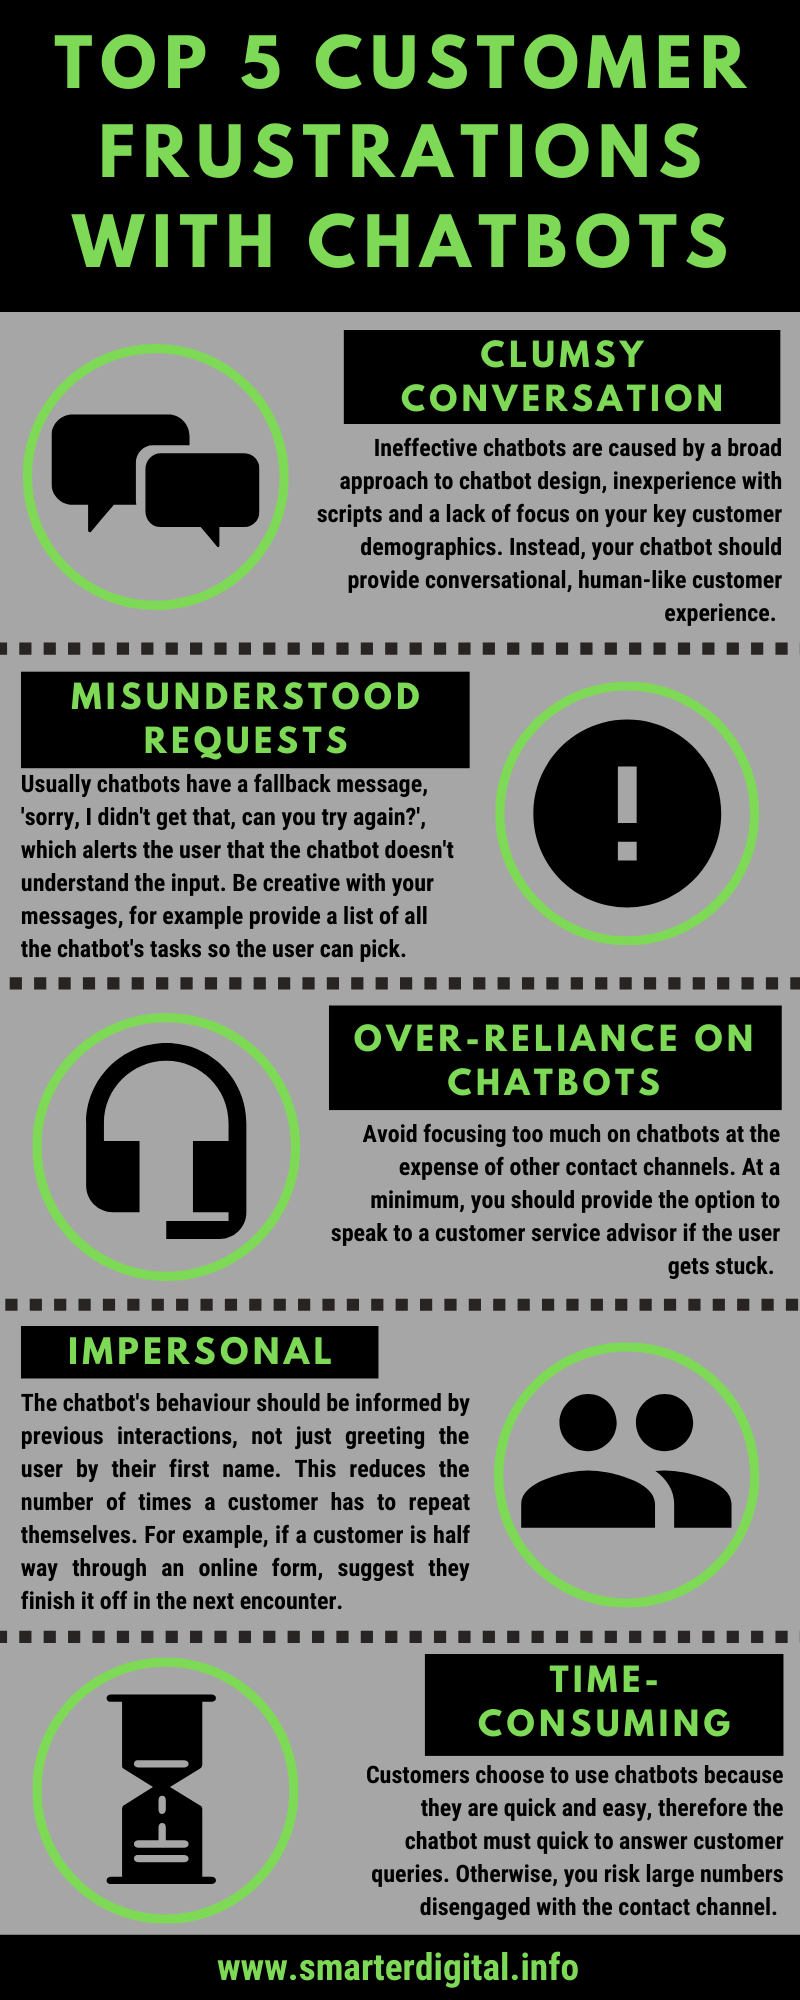 Infographic of the top 5 frustrations of chatbots.